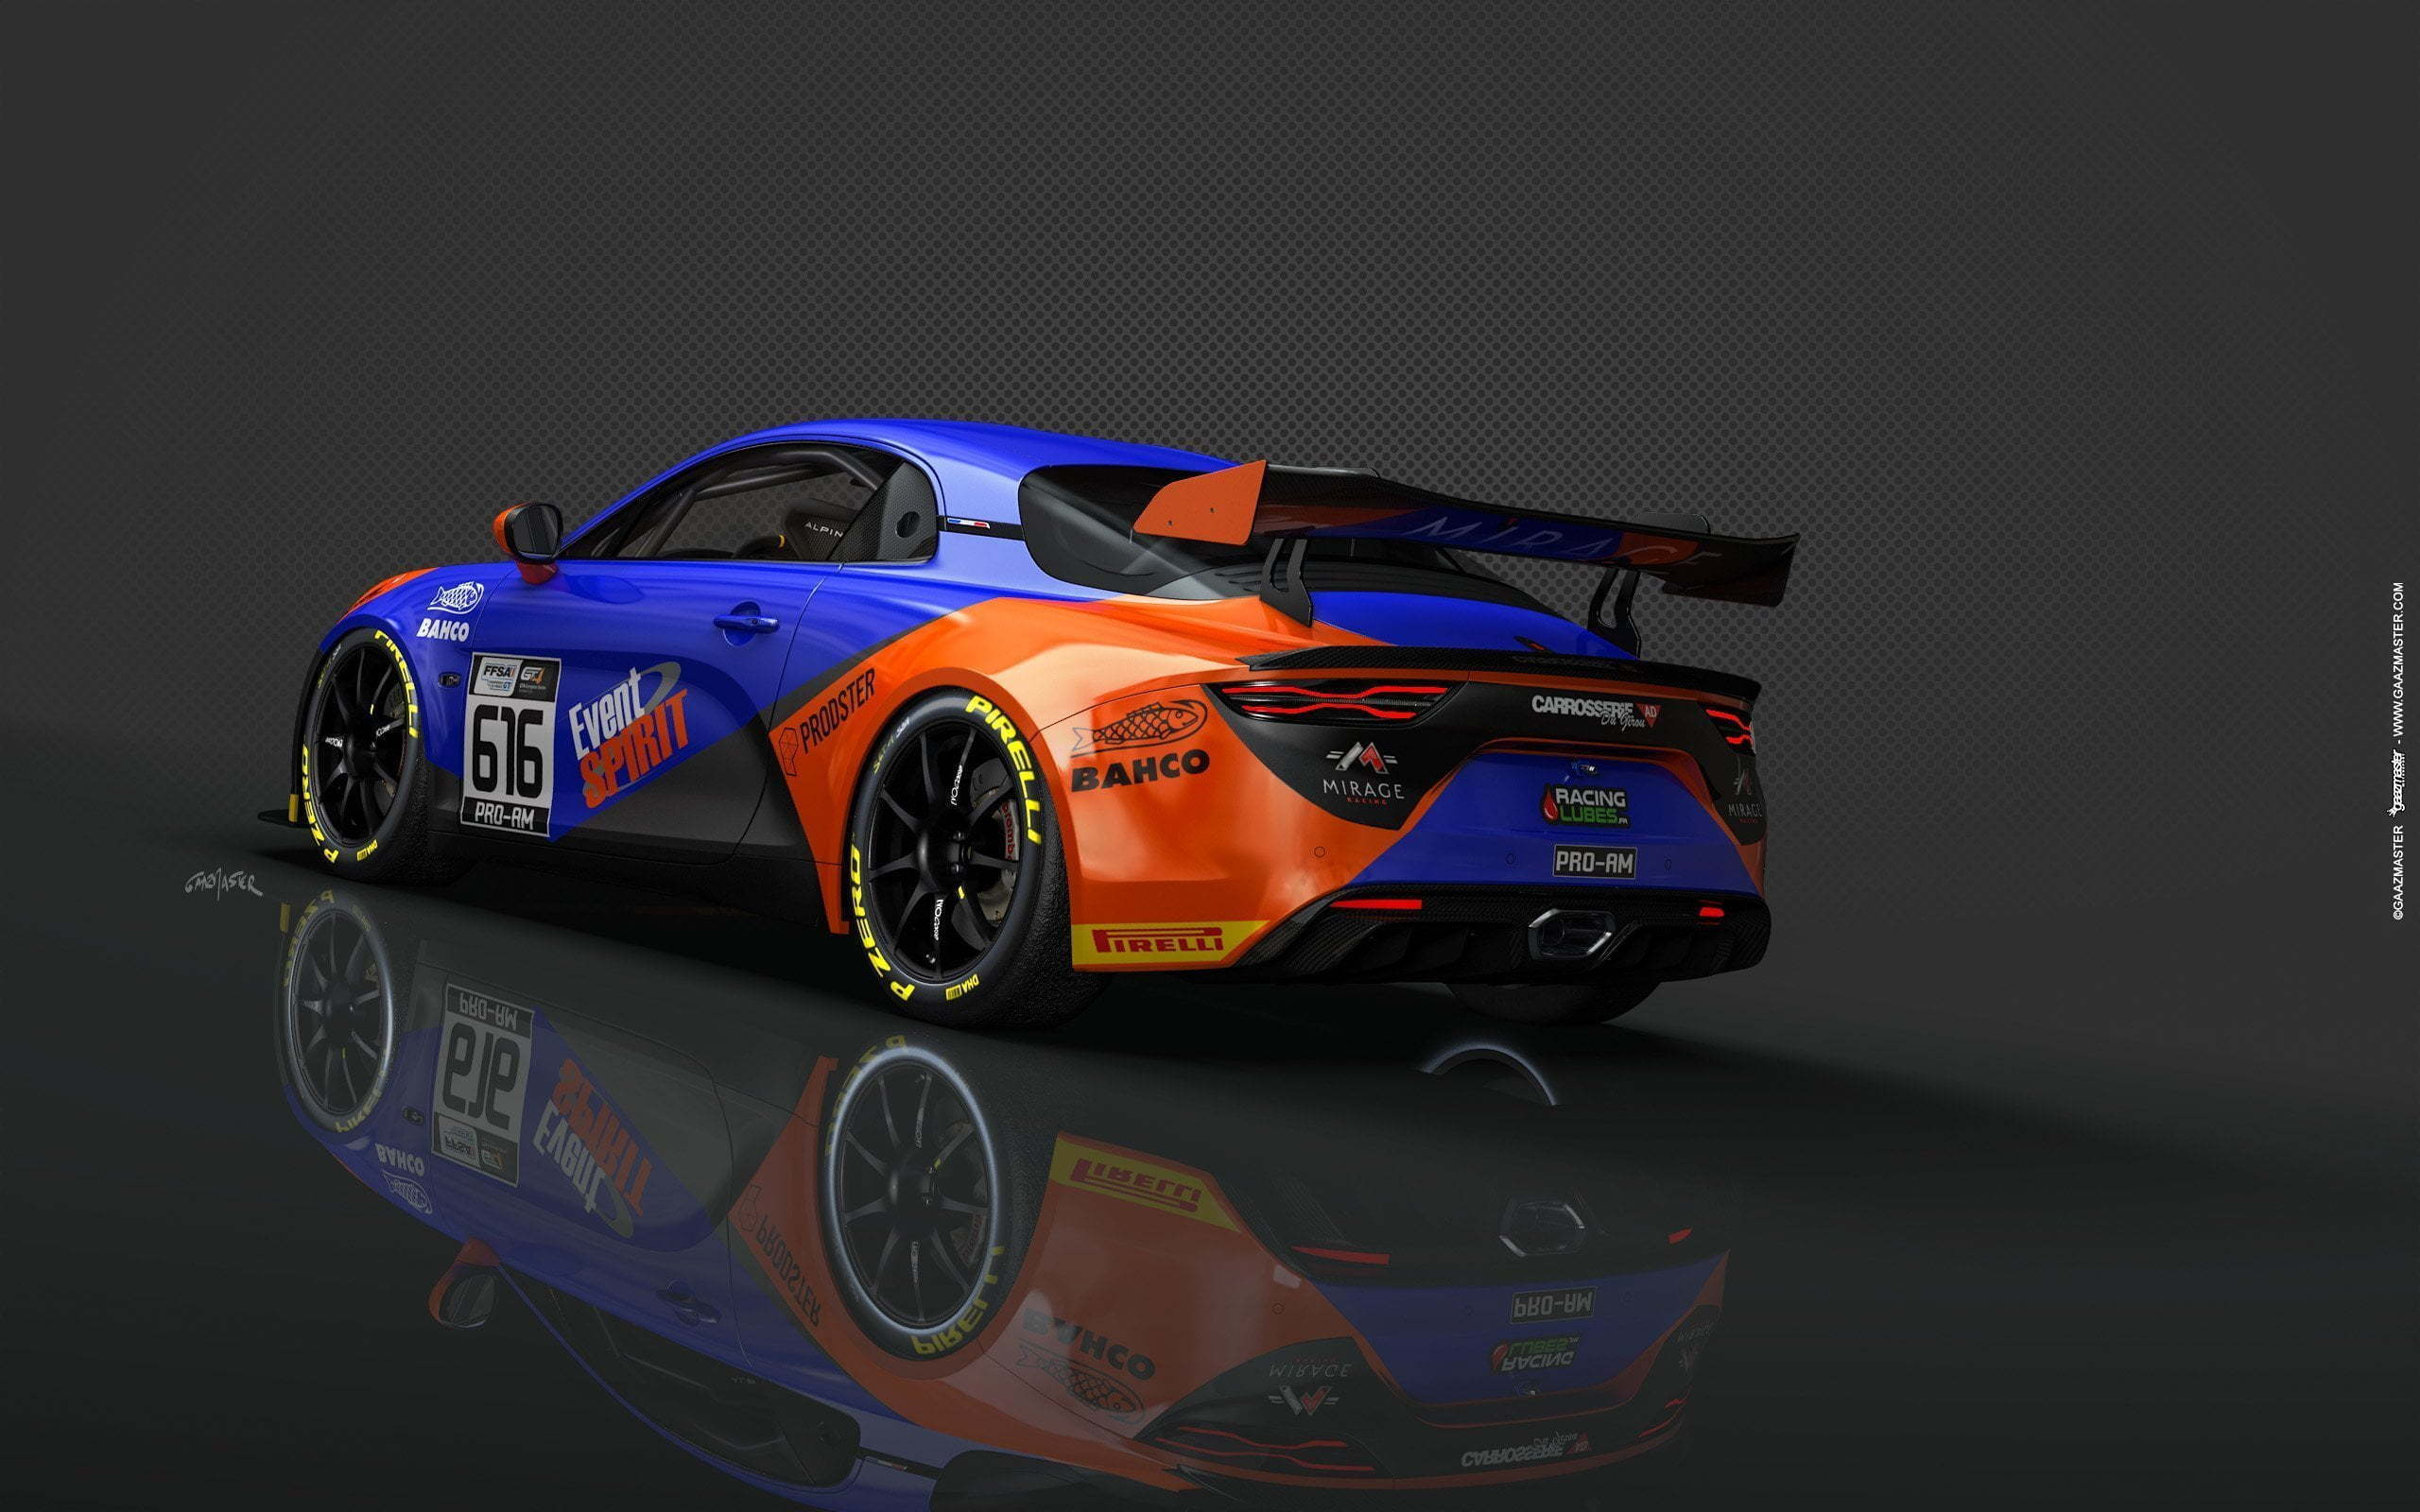 Alpine A110 GT4 Mirage Racing Iannetta